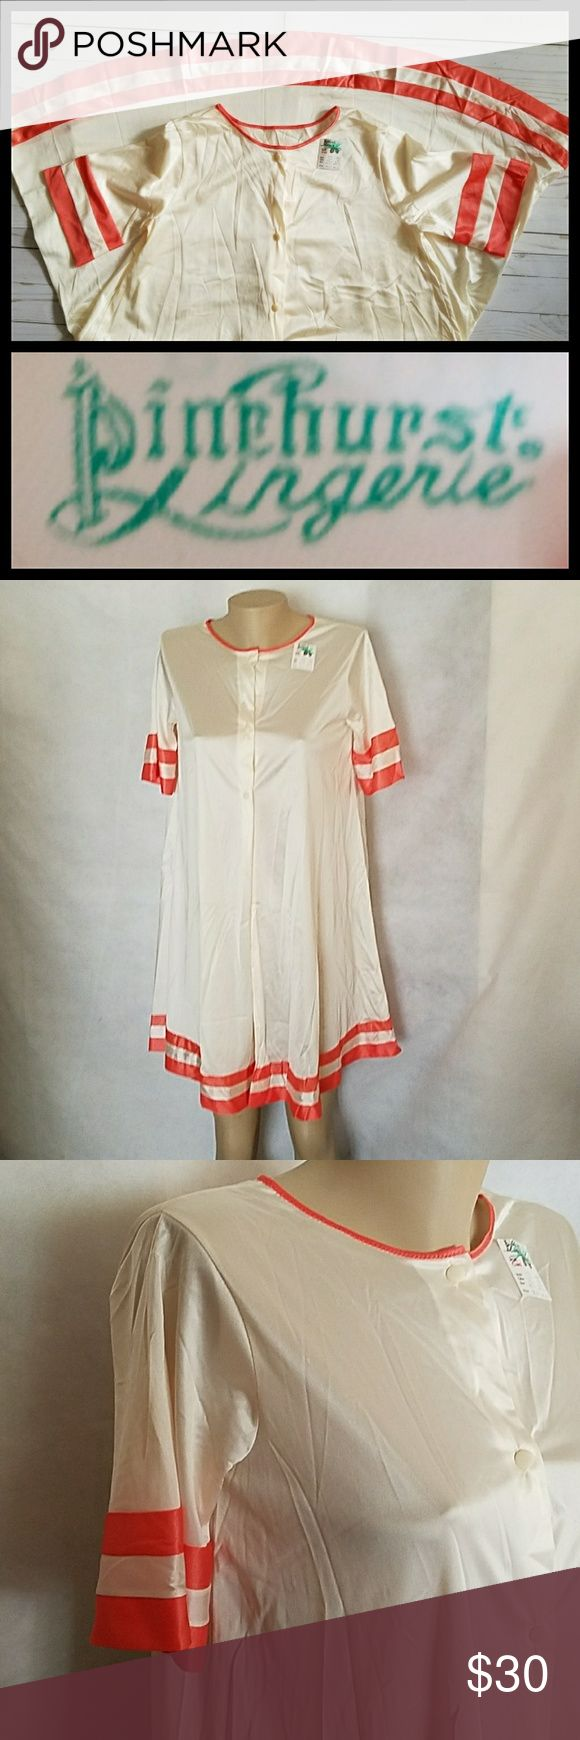 Vintage Pinehurst Lingerie Ivory Robe NWT Pinehurst Lingerie Vintage Price tag lower My price $30  *may have a snag or 2 from the price tag/straight pin Not that noticeable See 4th pic located in front middle 2nd/3rd button left side  I offer 30% discount on 2 or more bundles    Women's non-cling robe ONLY Neckline/short sleeves/hem trimmed Front opening with 3 small cute plastic  buttons Color: pearl/salmon (trim) Size petite Pit to pit 19 Length 34 100% nylon  Made in USA Pinehurst…